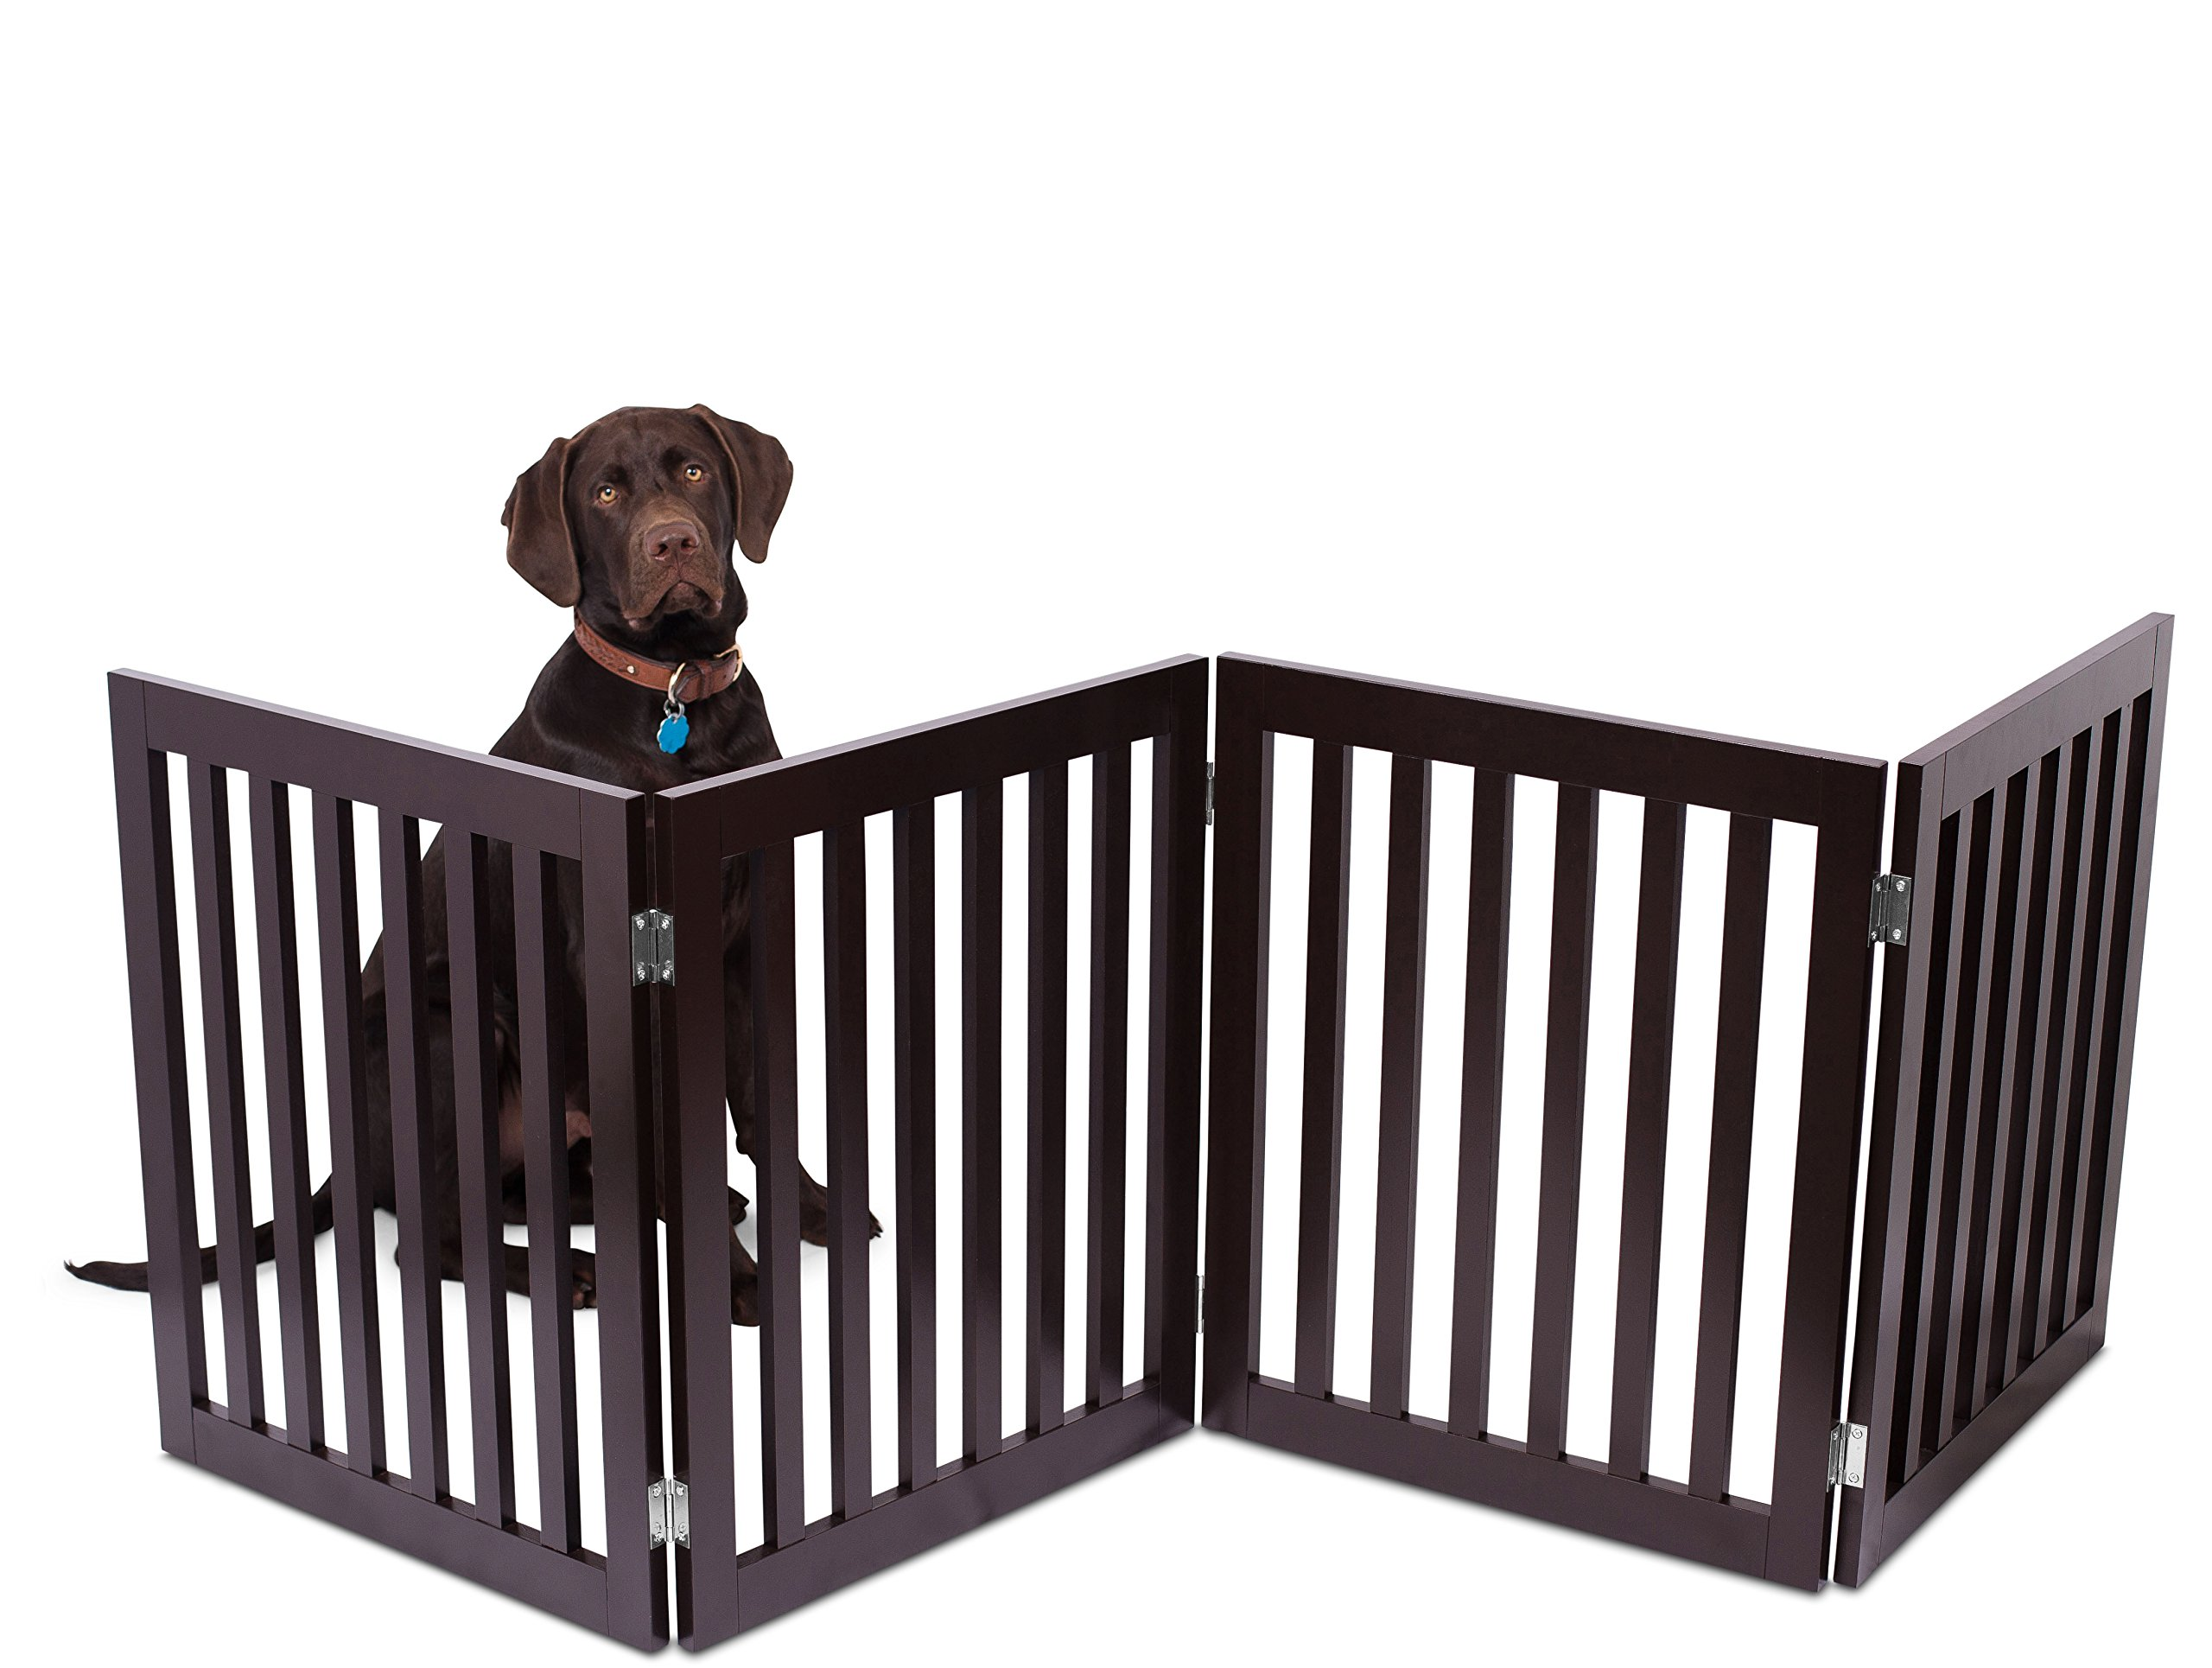 Internet's Best Traditional Pet Gate   4 Panel   24 Inch Step Over Fence   Free Standing Folding Z Shape Indoor Doorway Hall Stairs Dog Puppy Gate   Fully Assembled   Espresso   Wooden